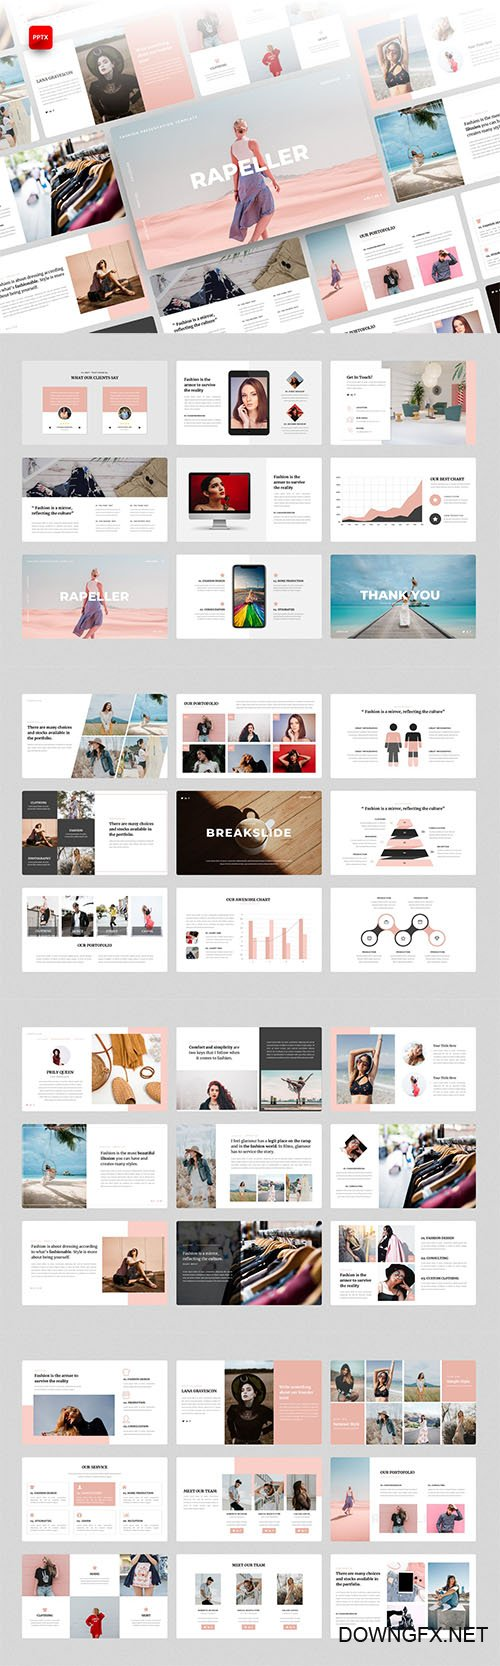 Rapeller-Fashion PowerPoint, Keynote and Google Slides Template